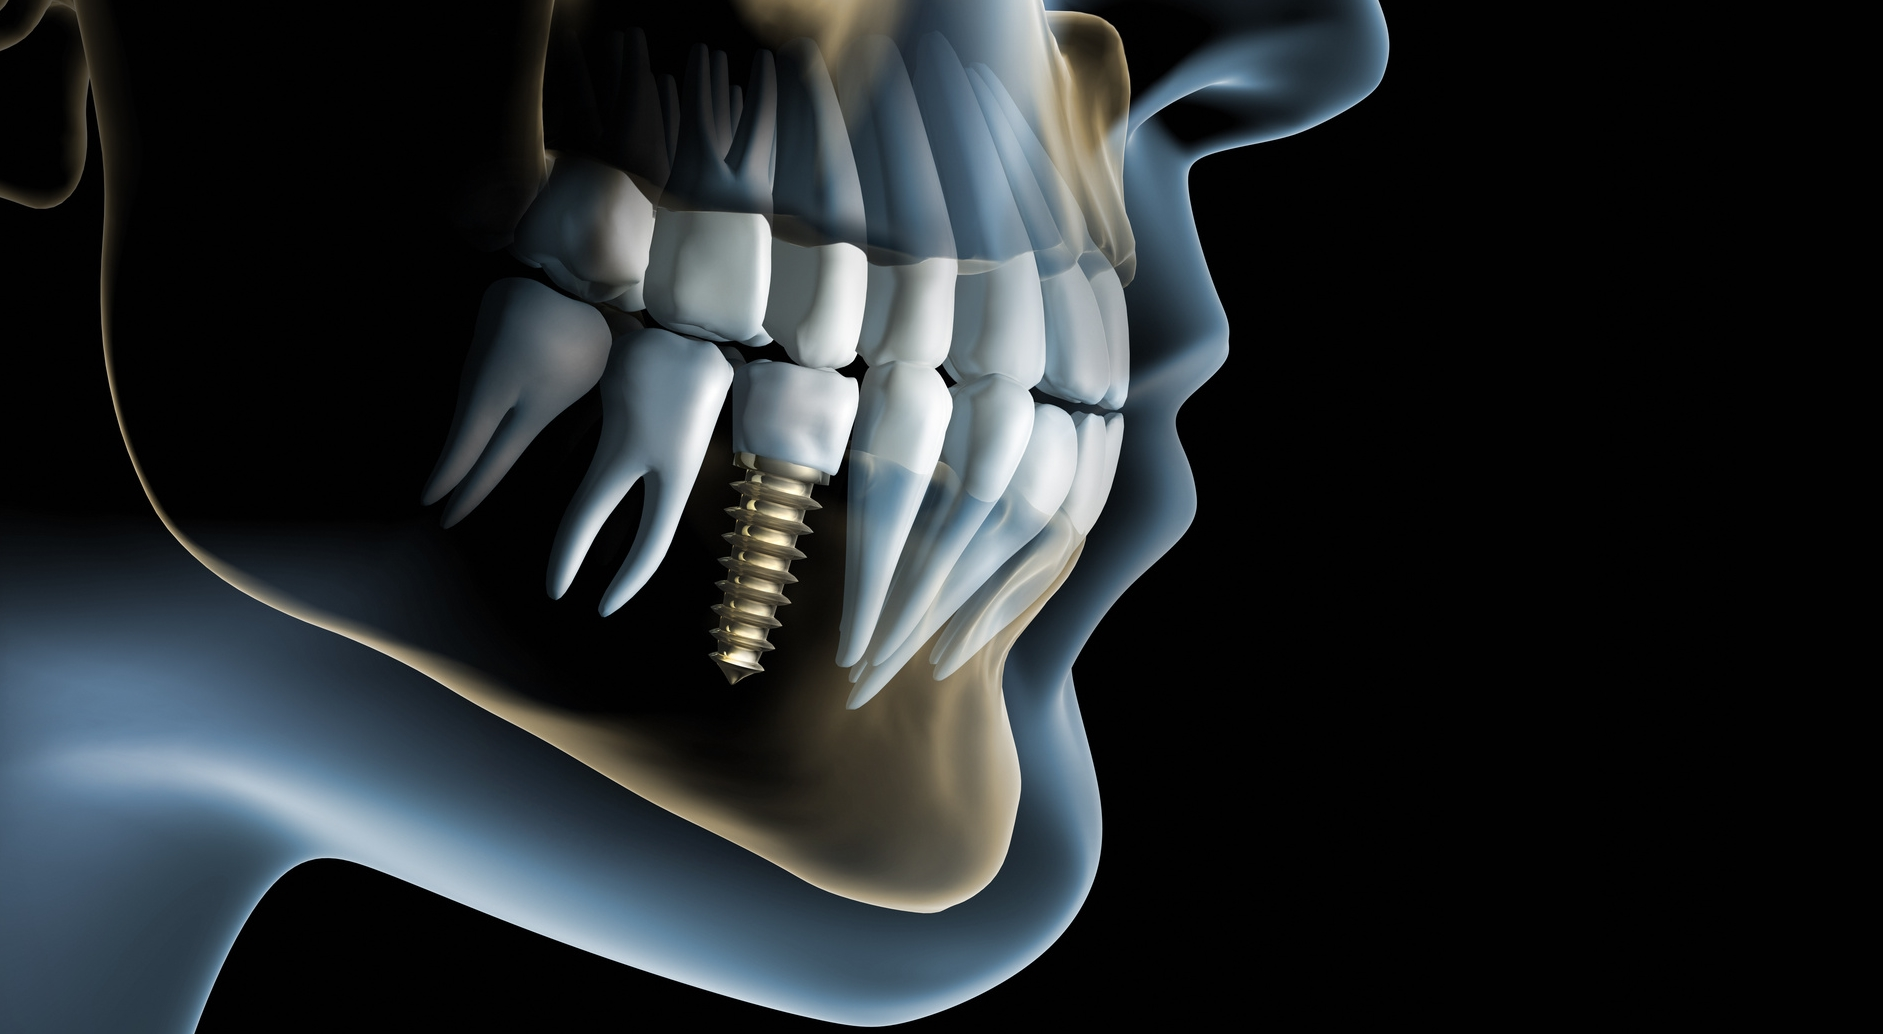 Dental Implants and Prosthetics Market 2019: Market Size Analysis by Key Venders, Price, Gross Margin, Segmentation, Trends, Share 2025